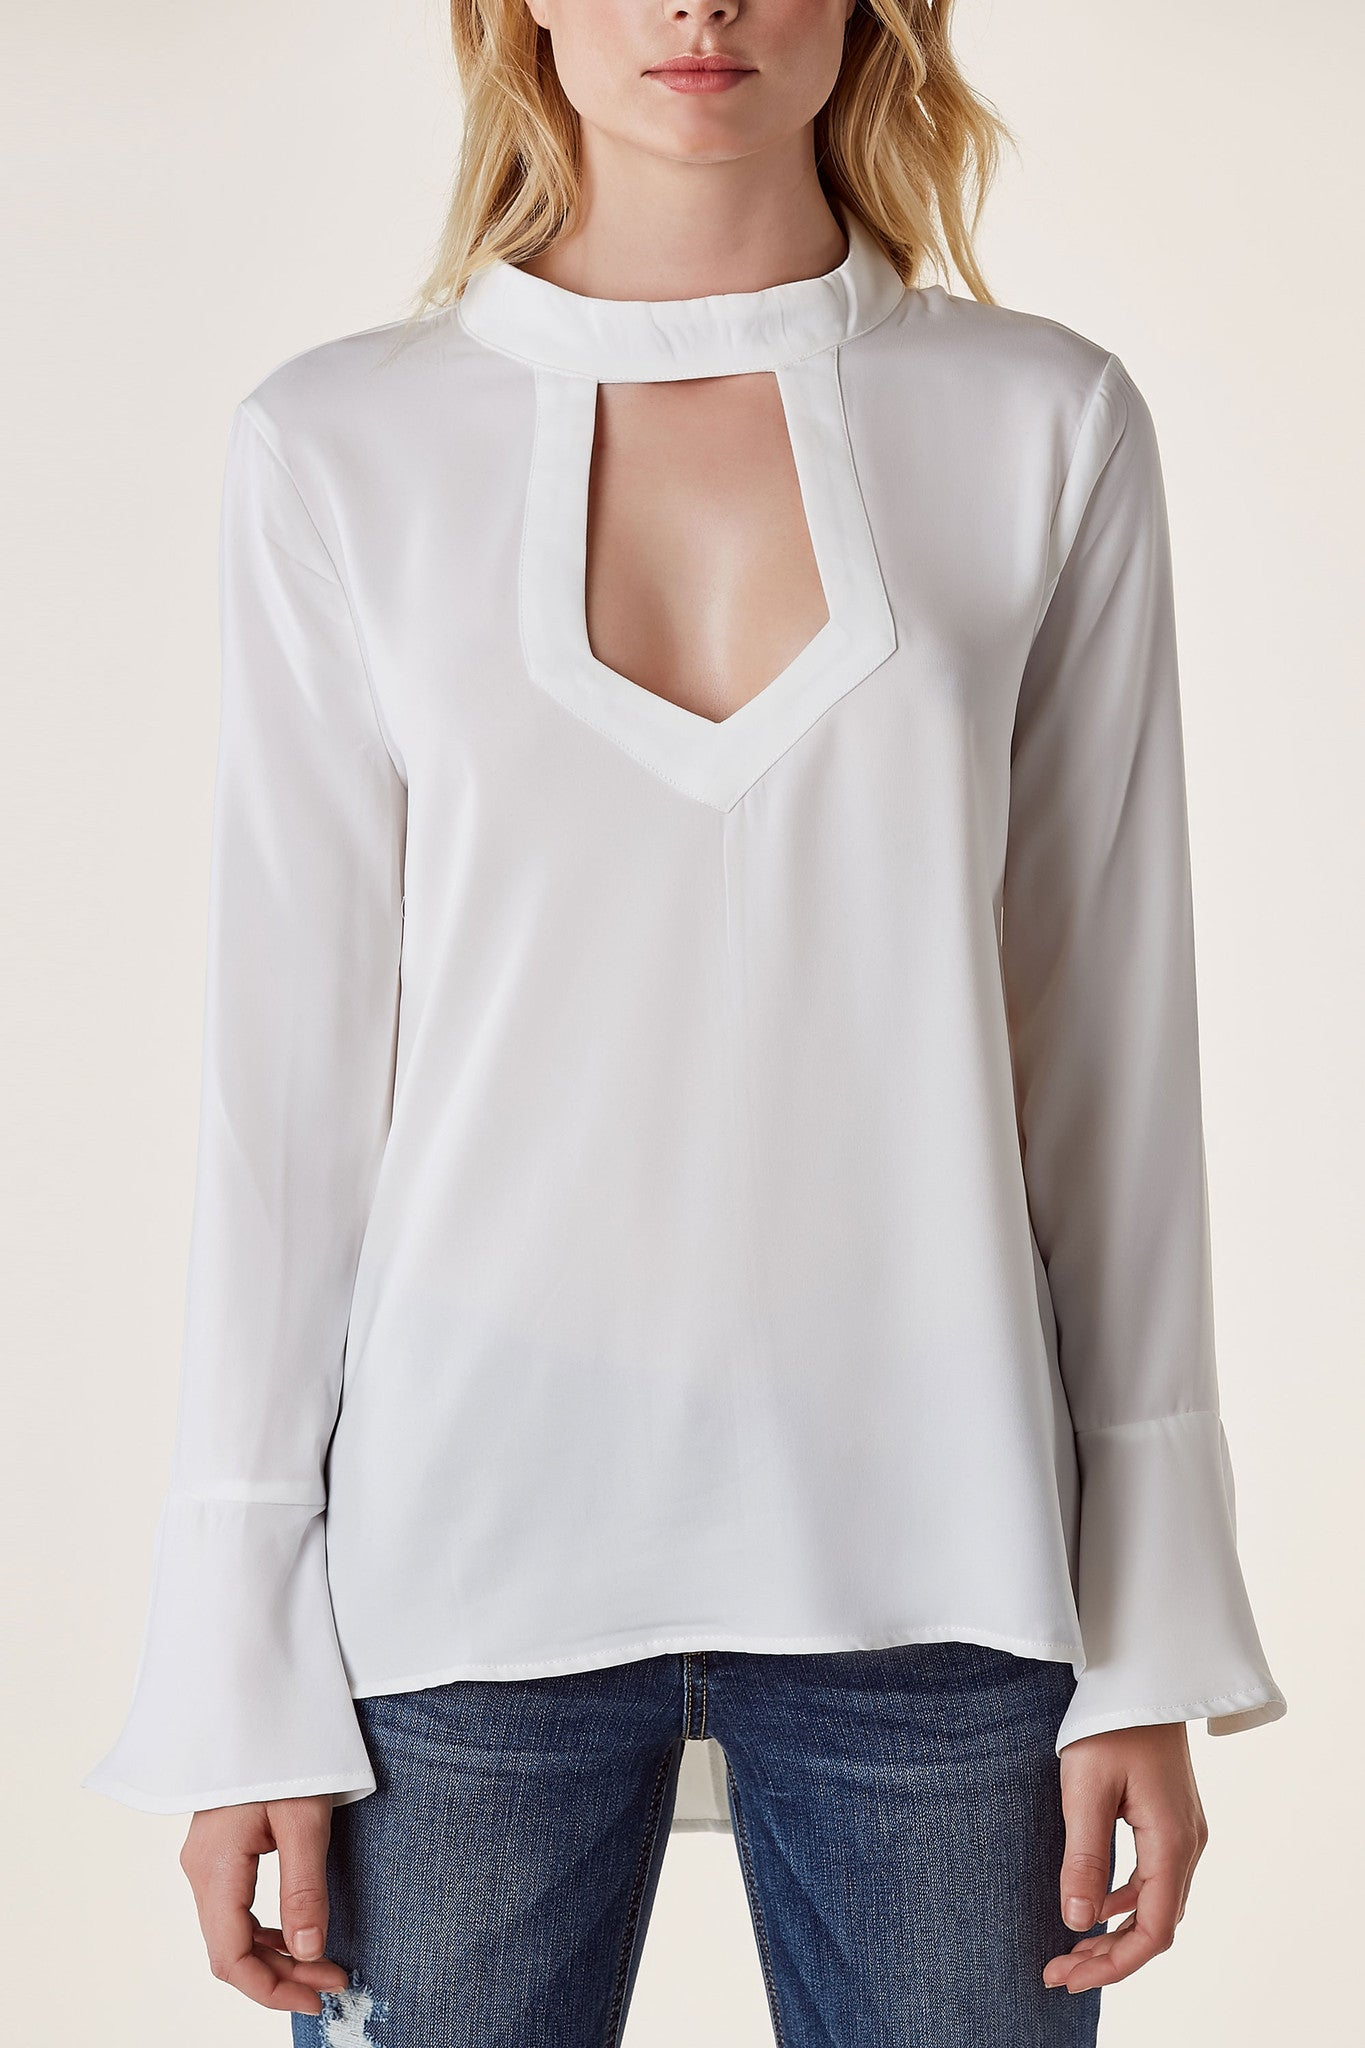 Chic high neck blouse with cut out in front and back. Longline hem with flirty bell sleeves and button closure in back.